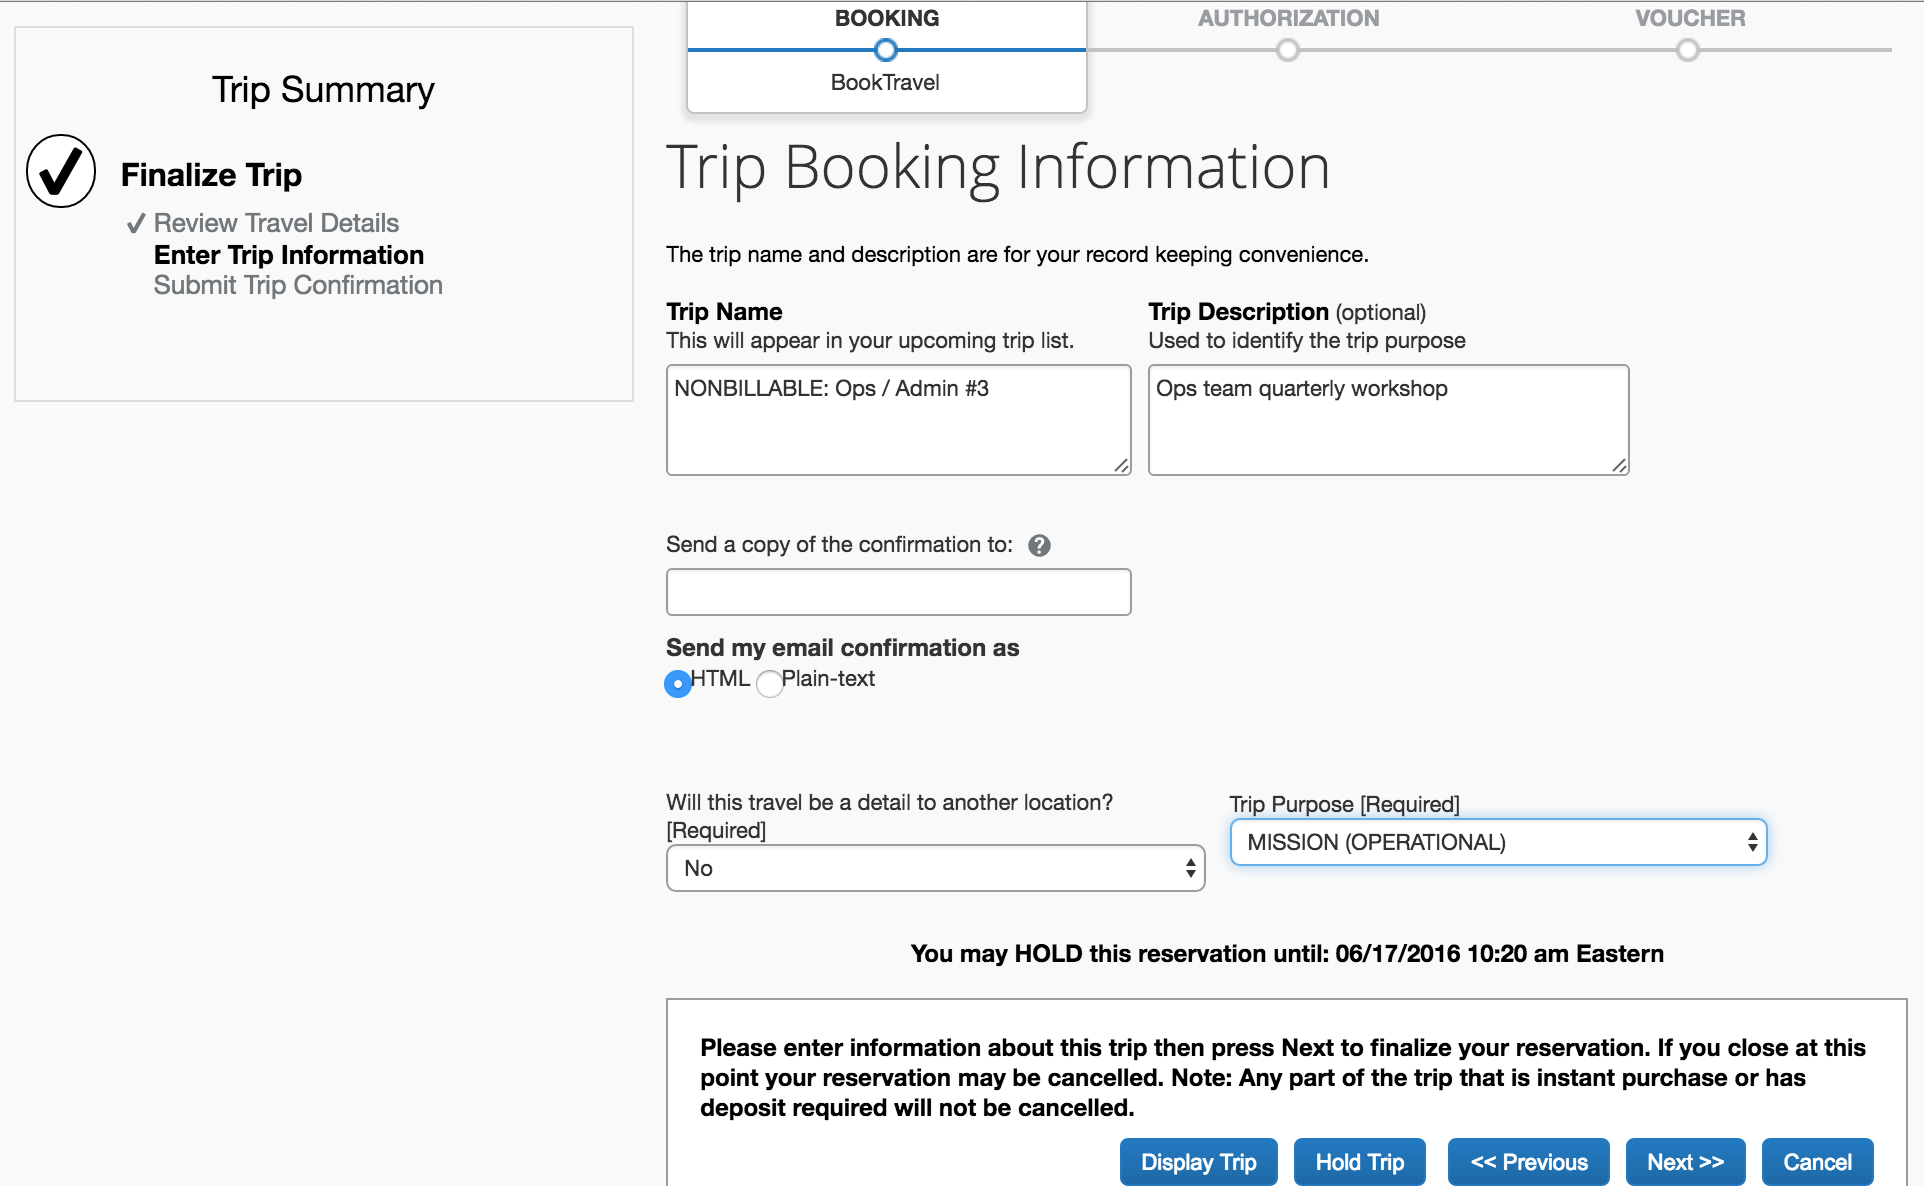 Trip Booking Information screen